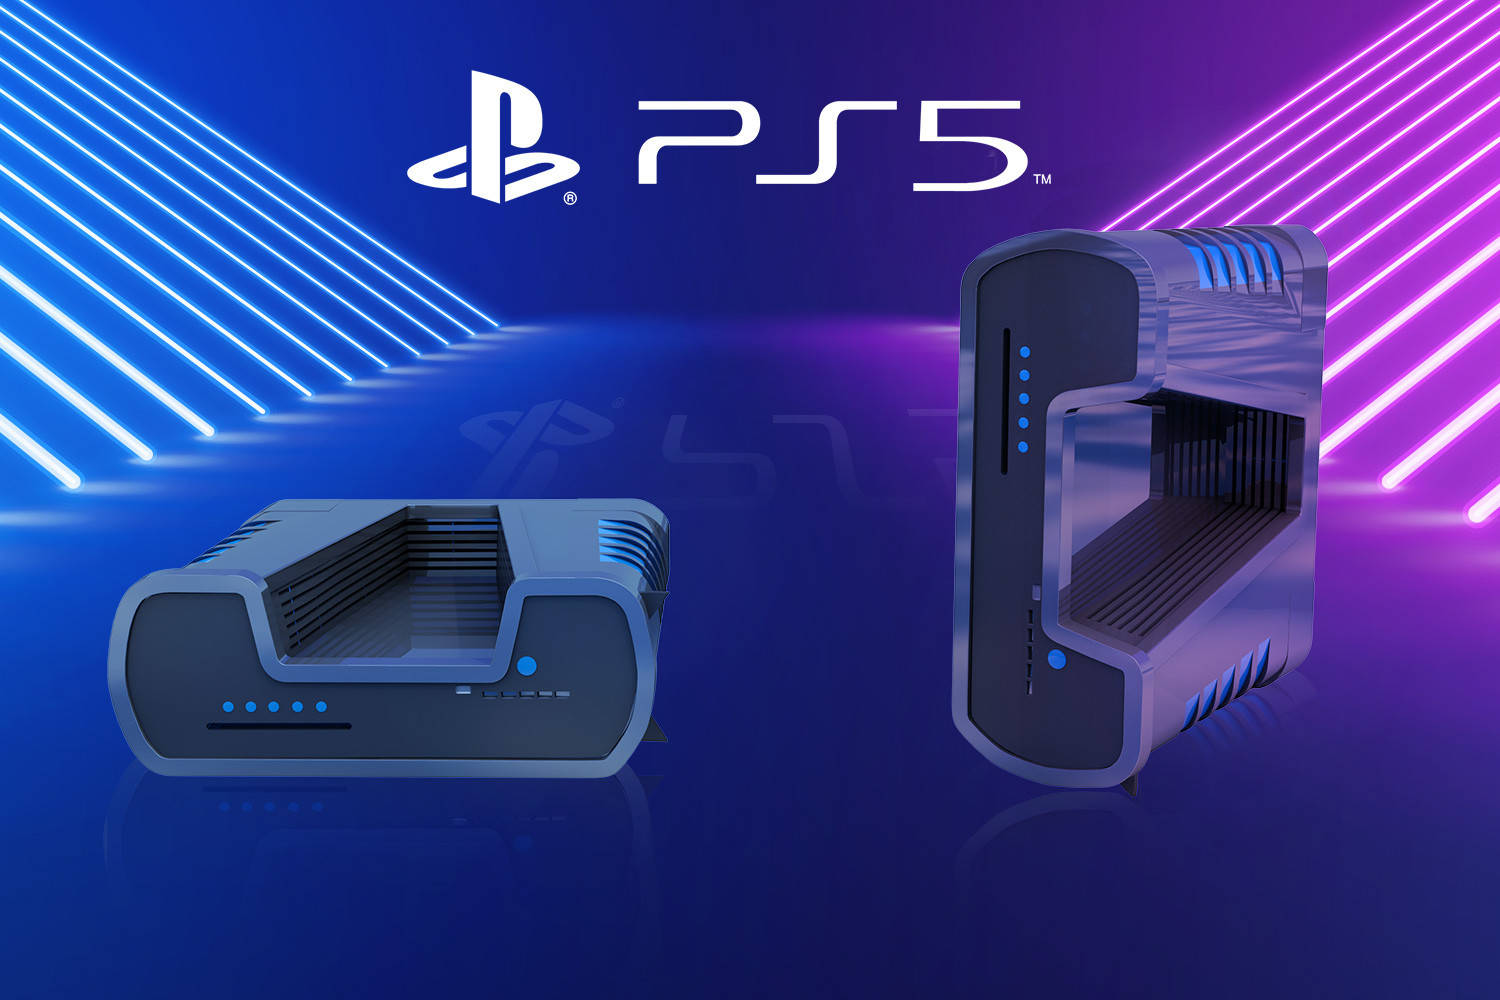 PS5 Price, specs, games and more